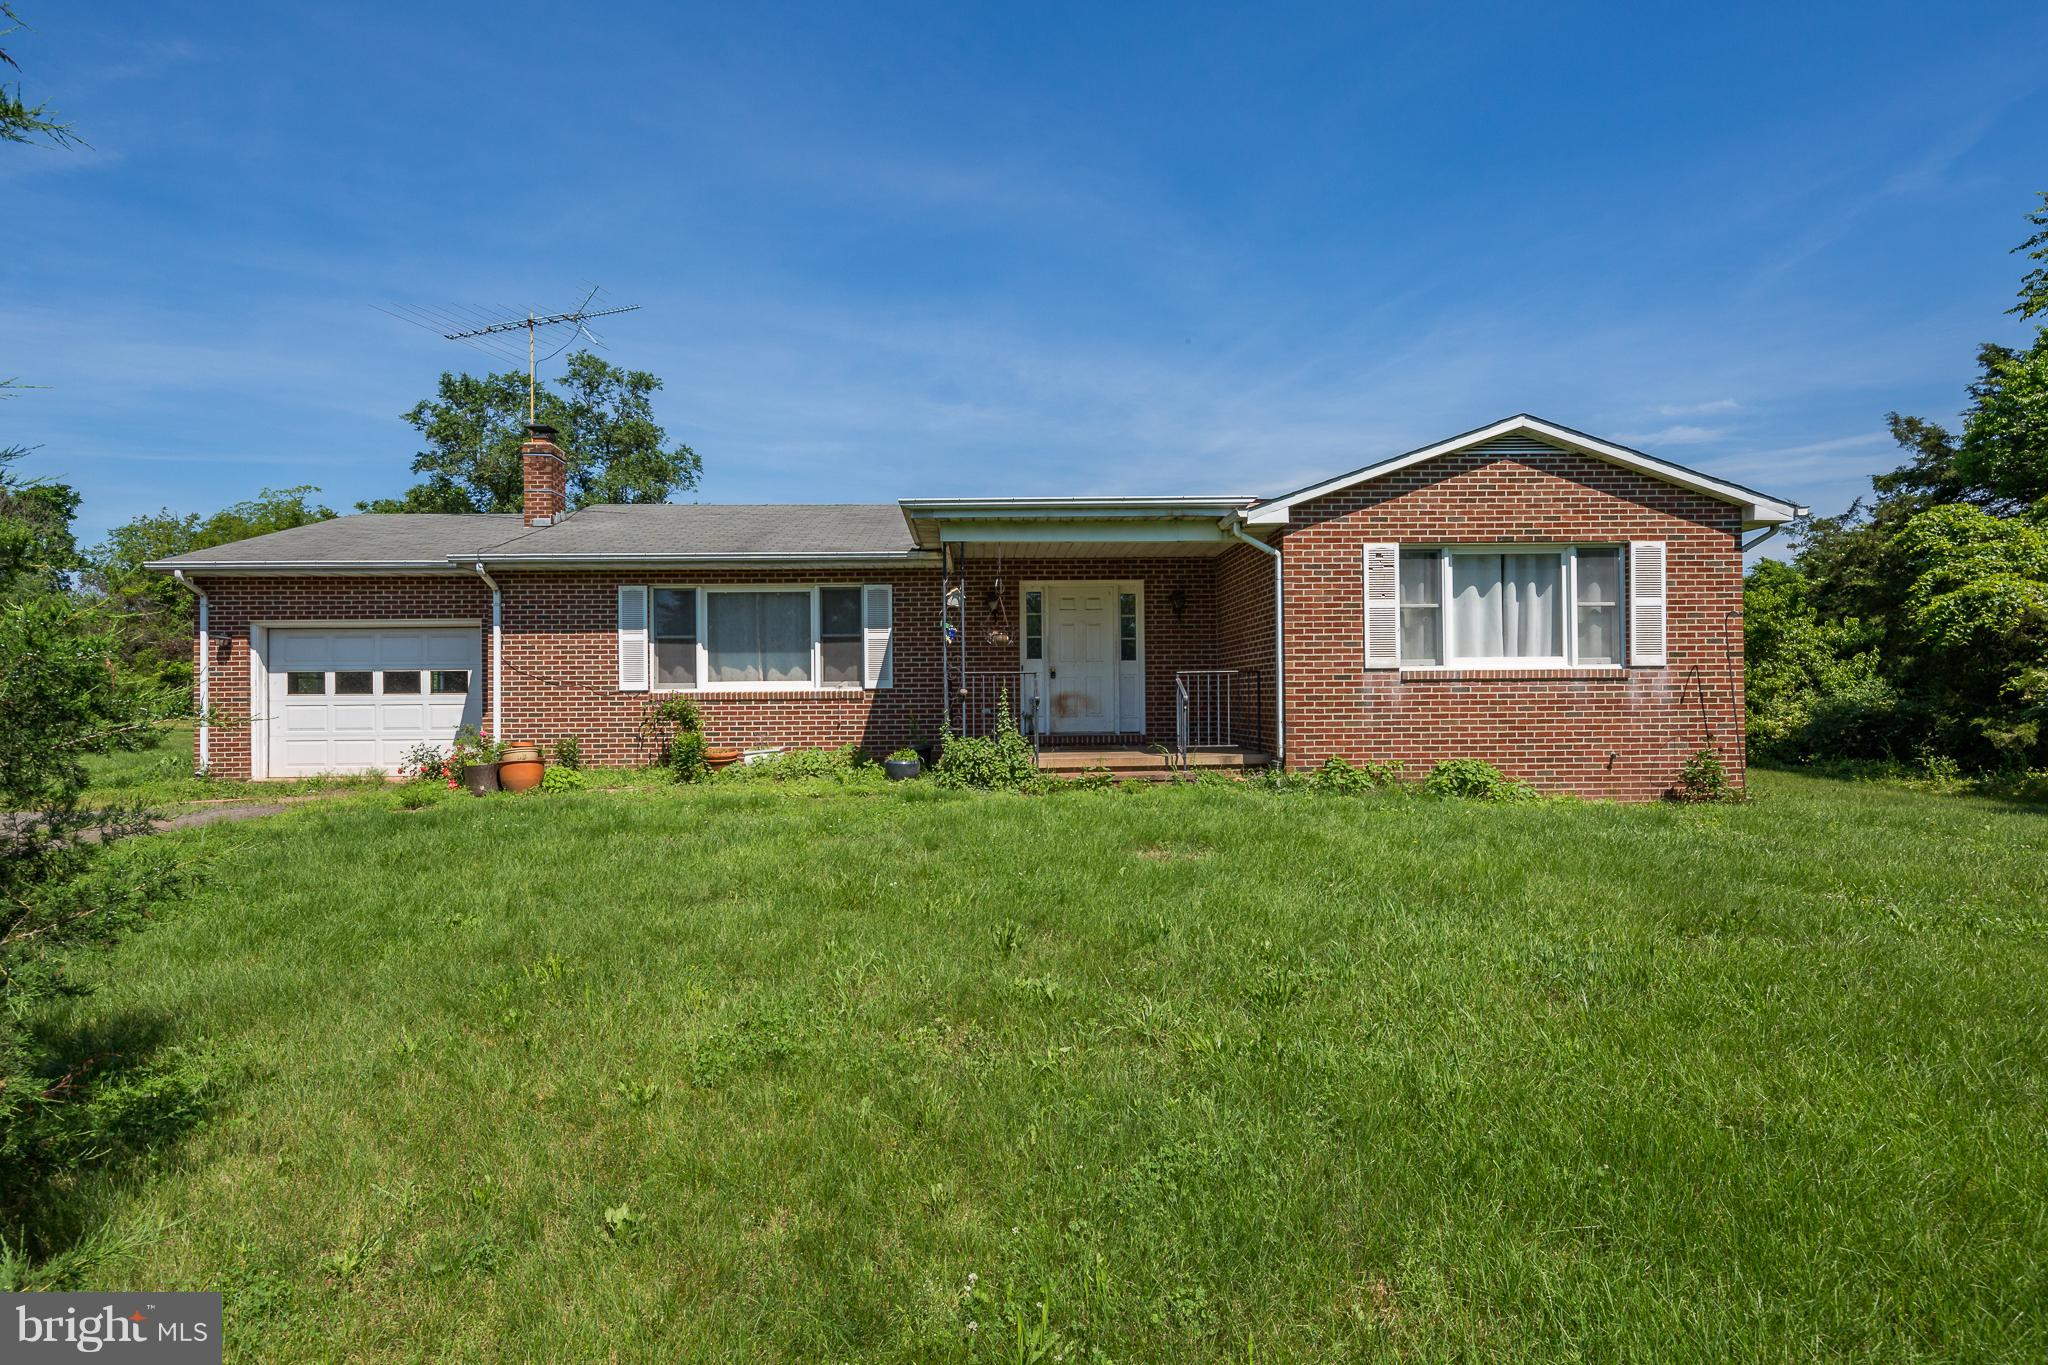 SOLID BRICK RAMBLER 3 BEDROOM 2 BATH FULL UNFINISHED BASEMENT..PROPERTY NEEDS WORK-REMODEL HOME OFFERED AS-IS.- NO HOA OR COVENANTS.